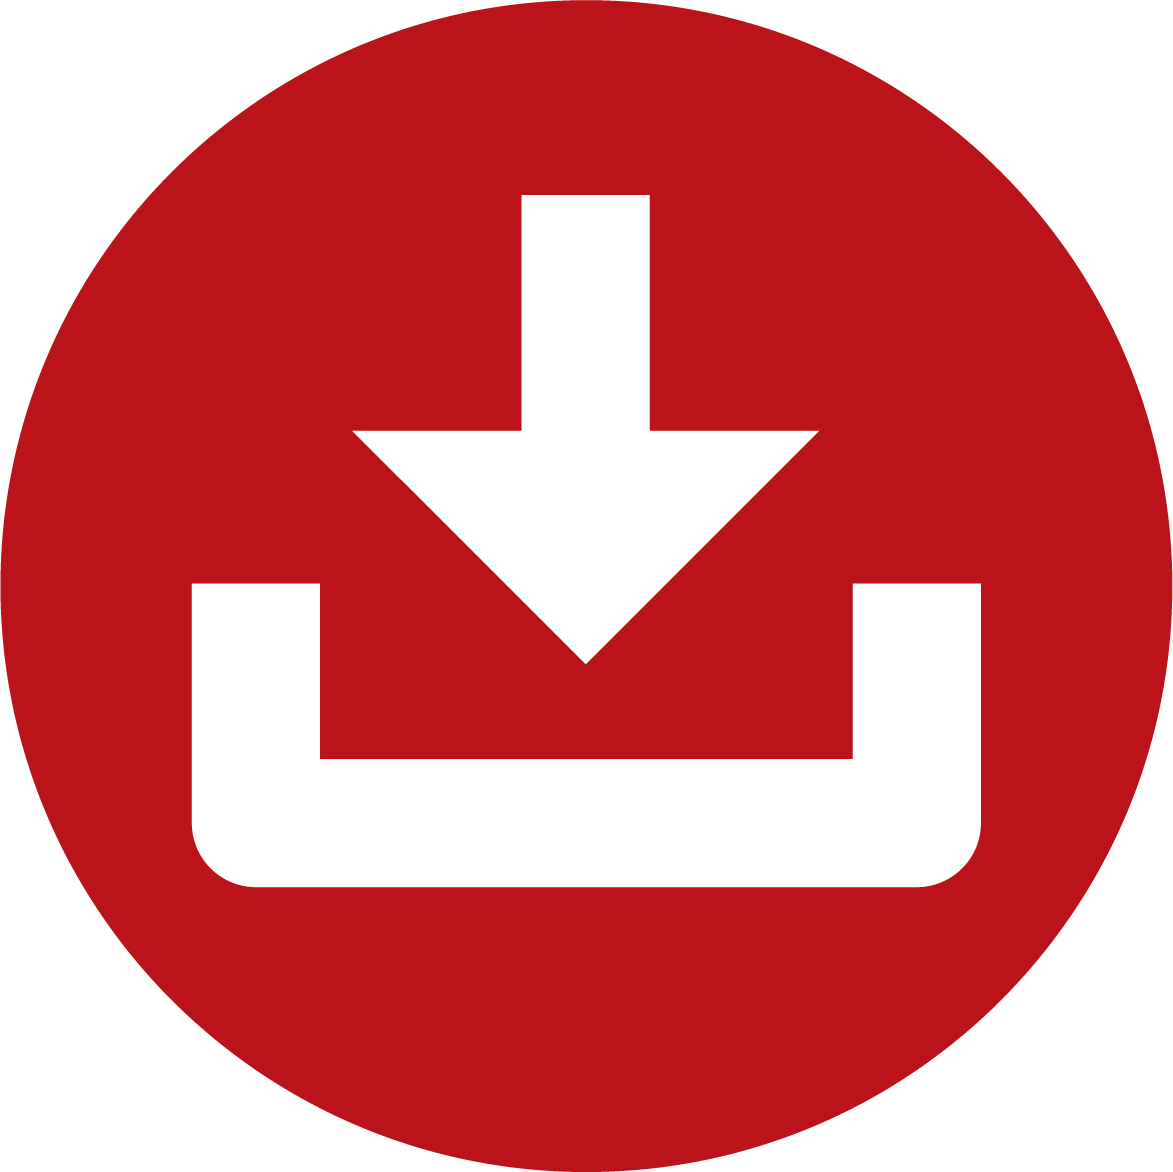 Download_icon-01.png